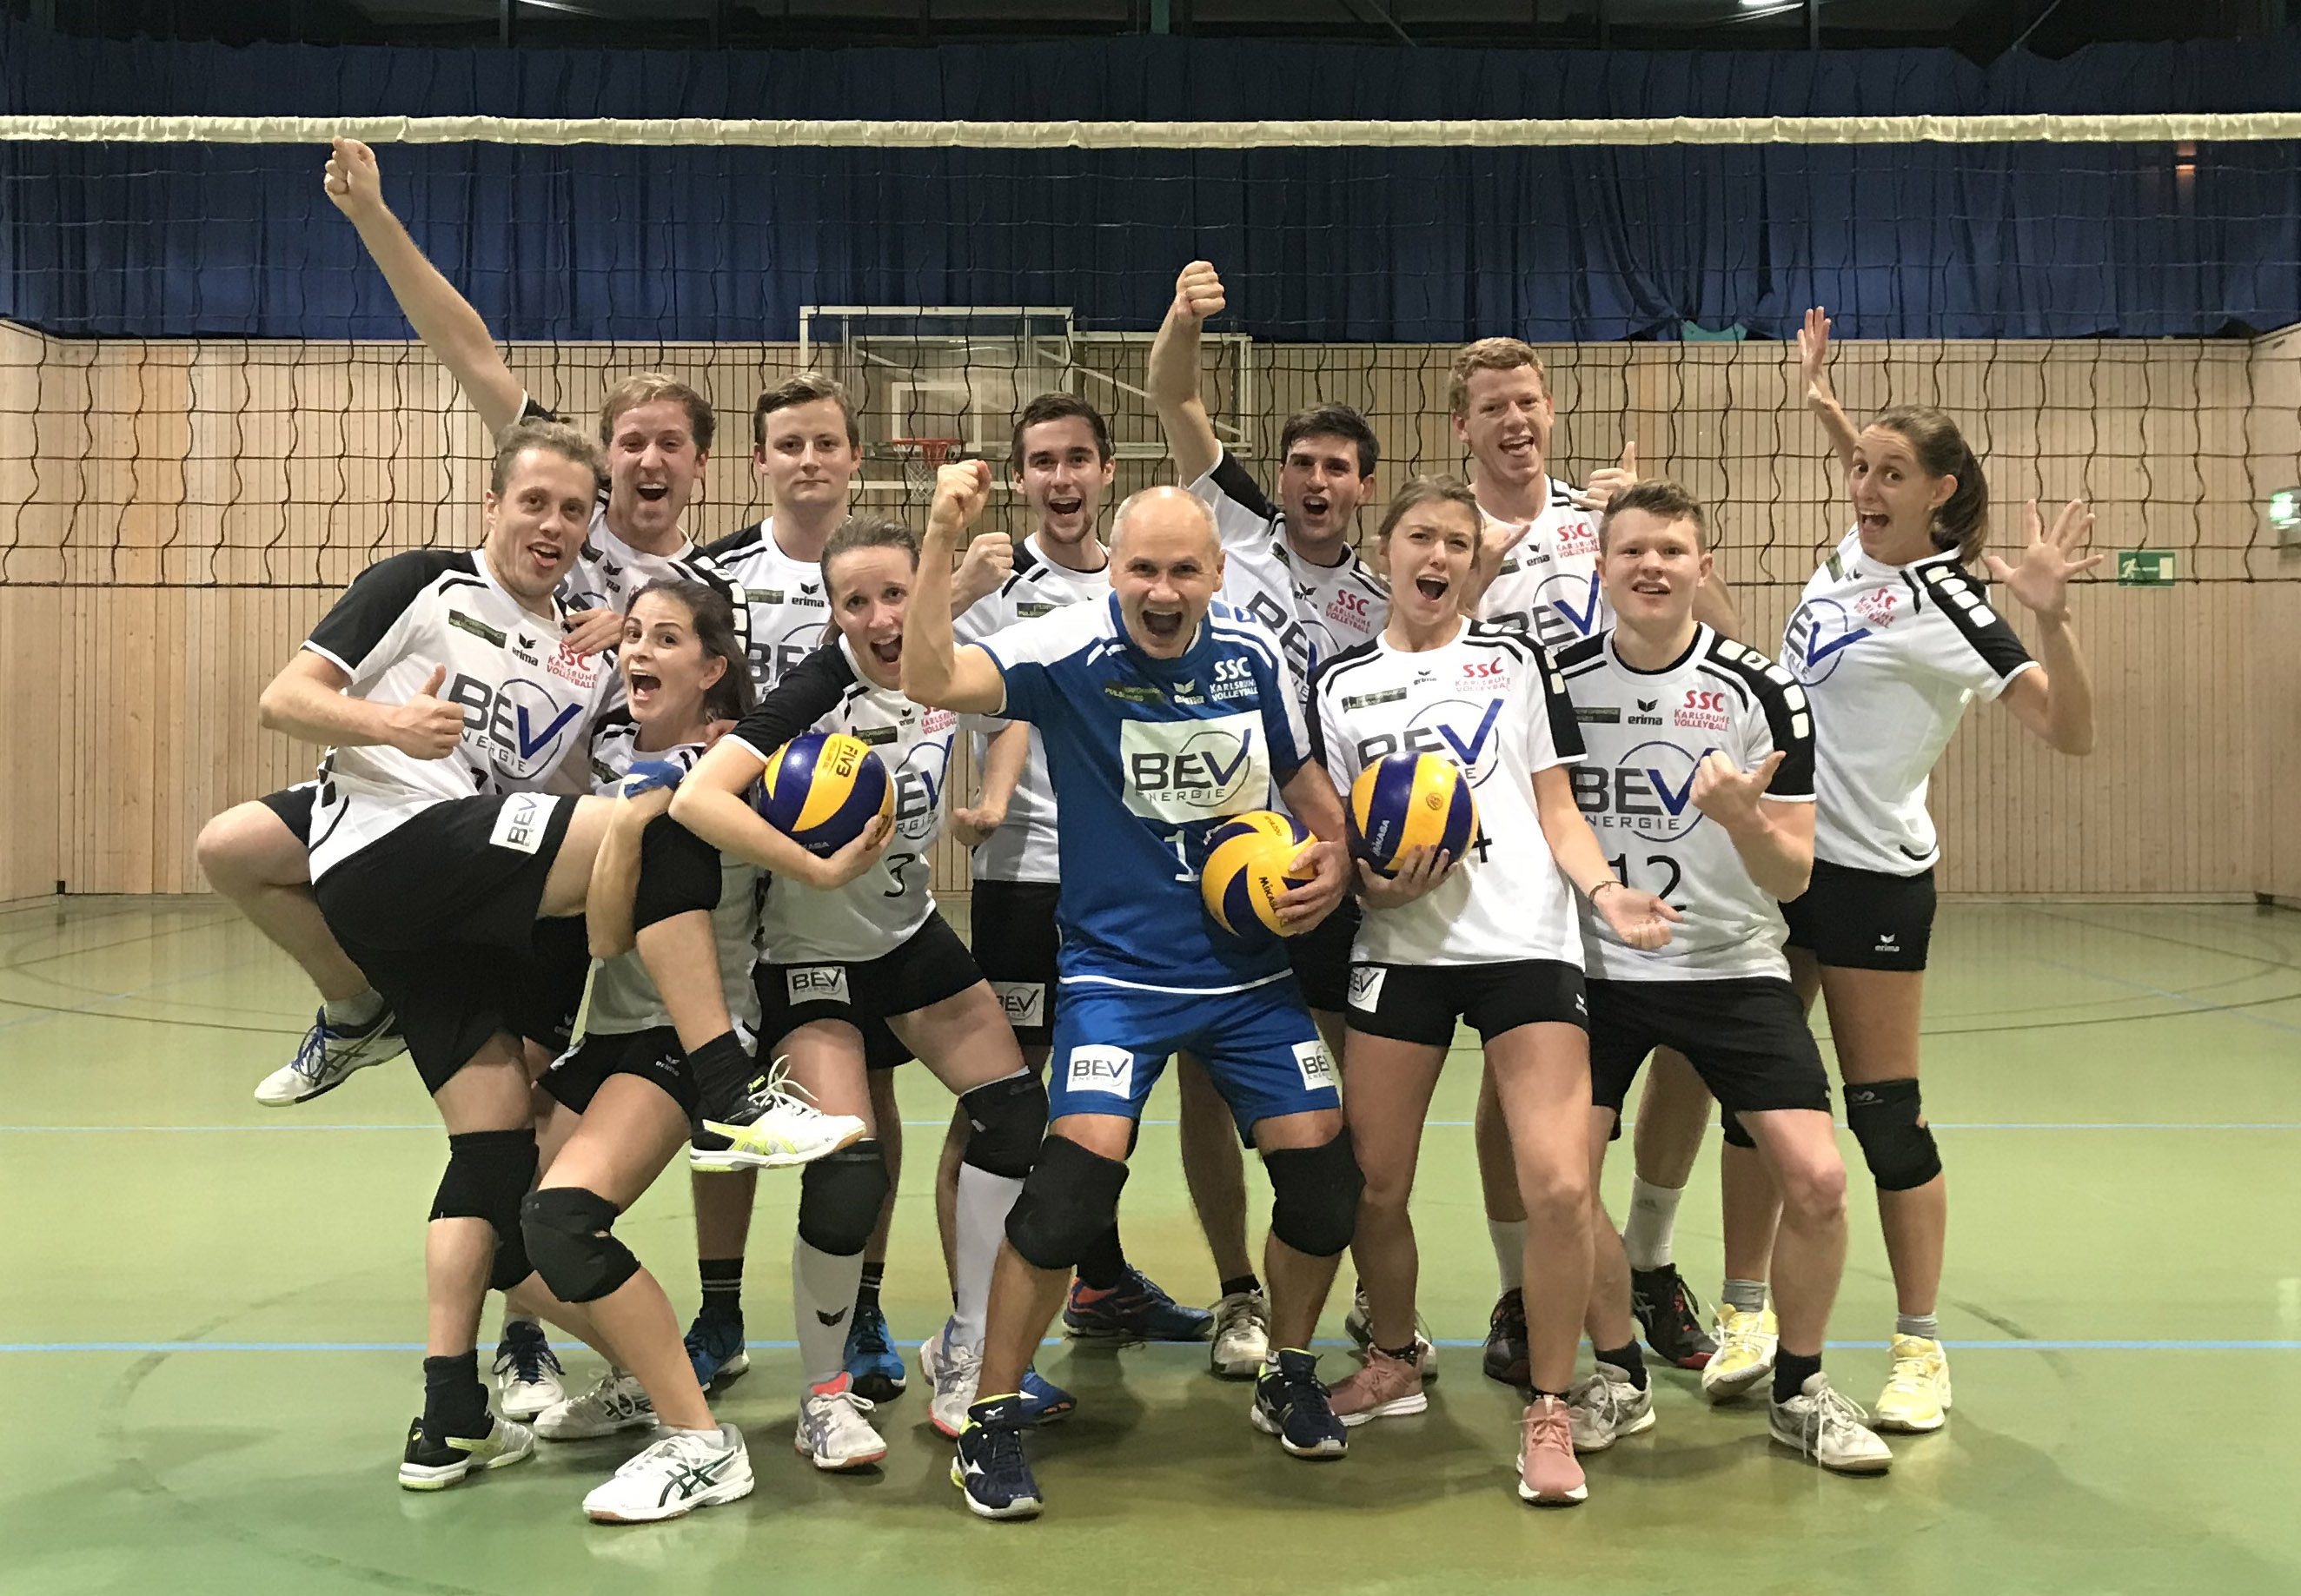 karlsruhe volleyball